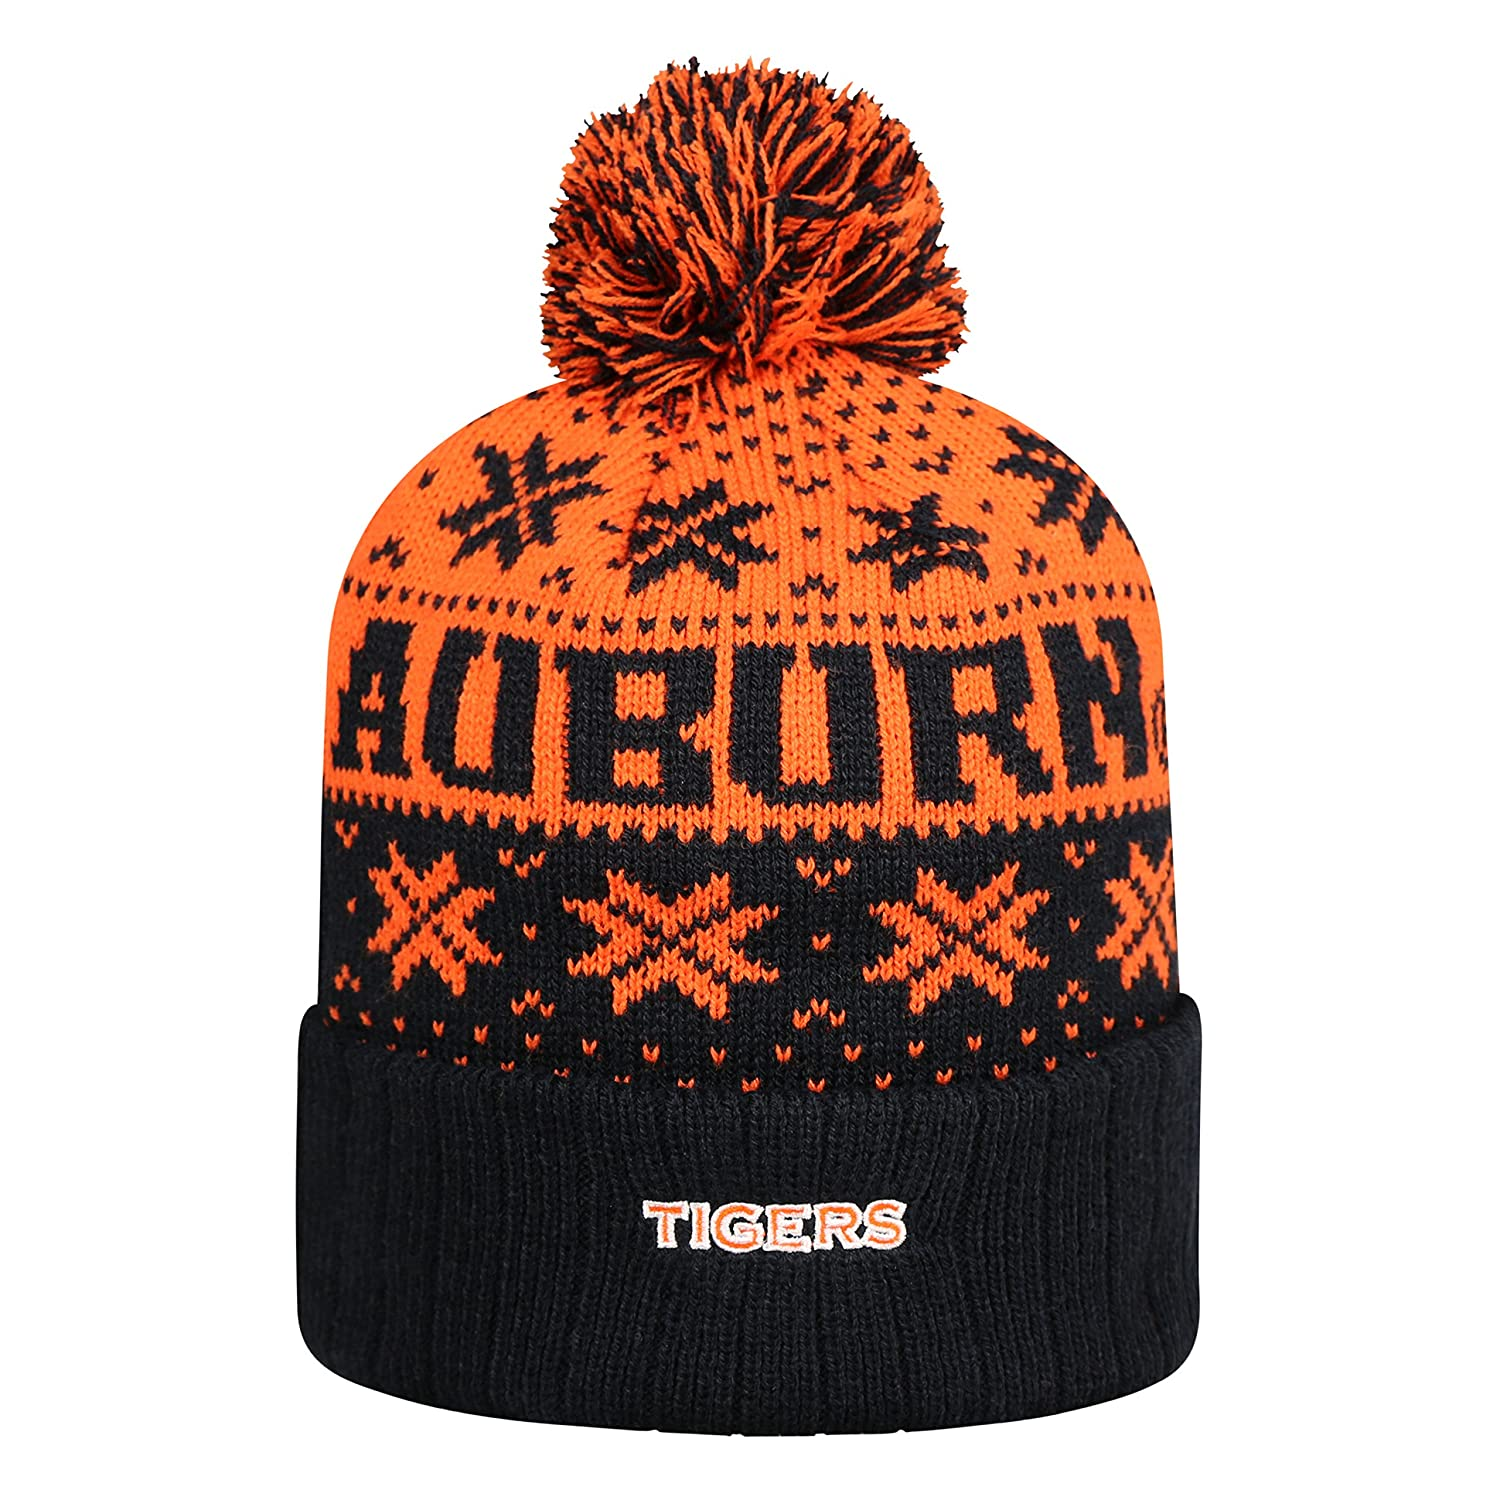 Amazon.com   Top of the World Auburn Tigers Subarctic Cuffed Pom Knit Beanie  Hat Cap   Sports   Outdoors 0cb8d969d50b